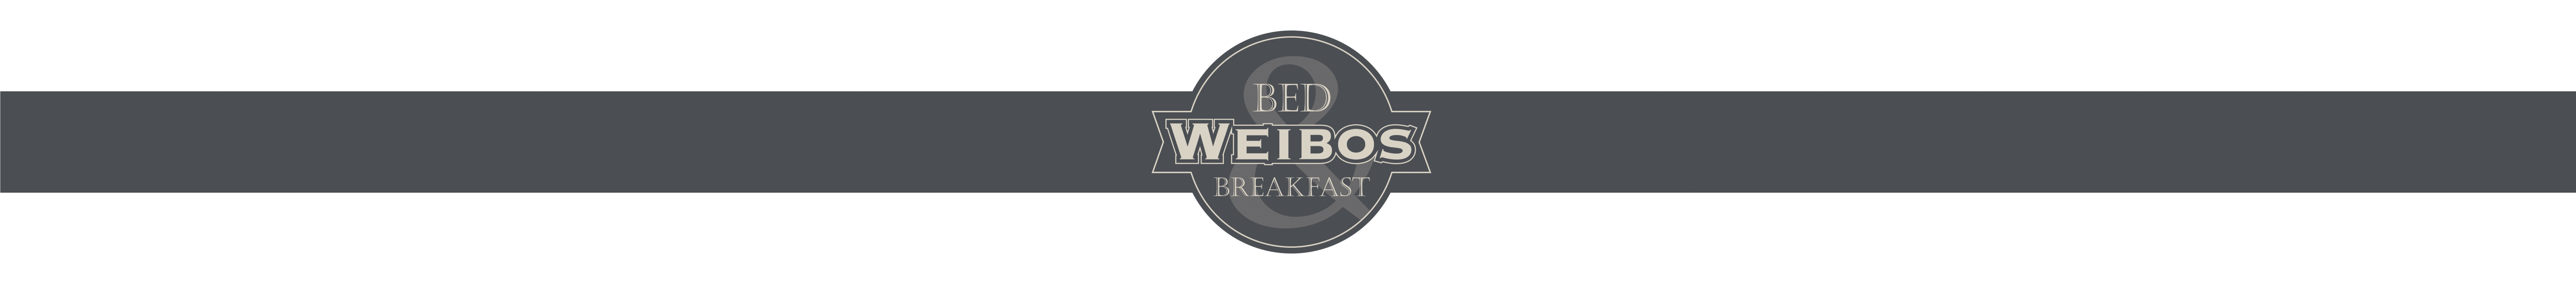 Weibos Bed & Breakfast